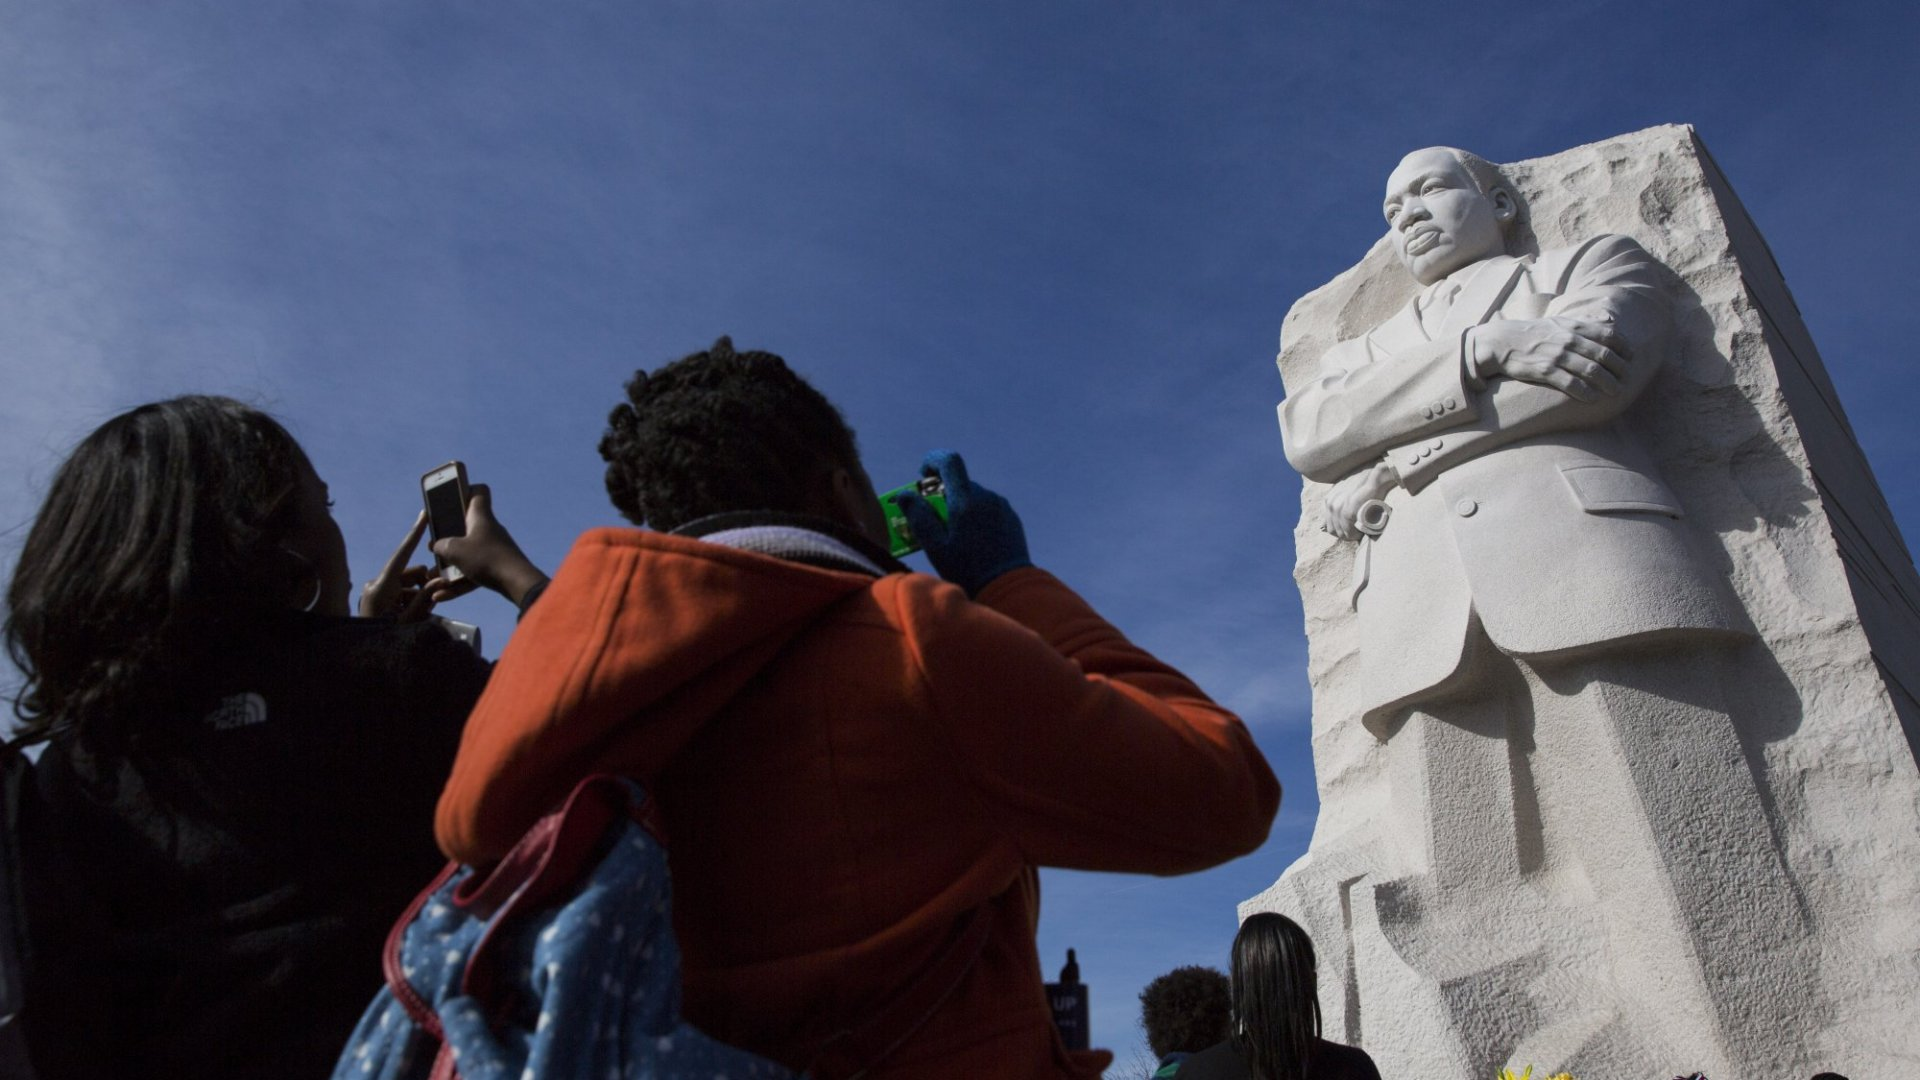 87 Inspiring Quotes for Martin Luther King Jr.'s 87th Birthday